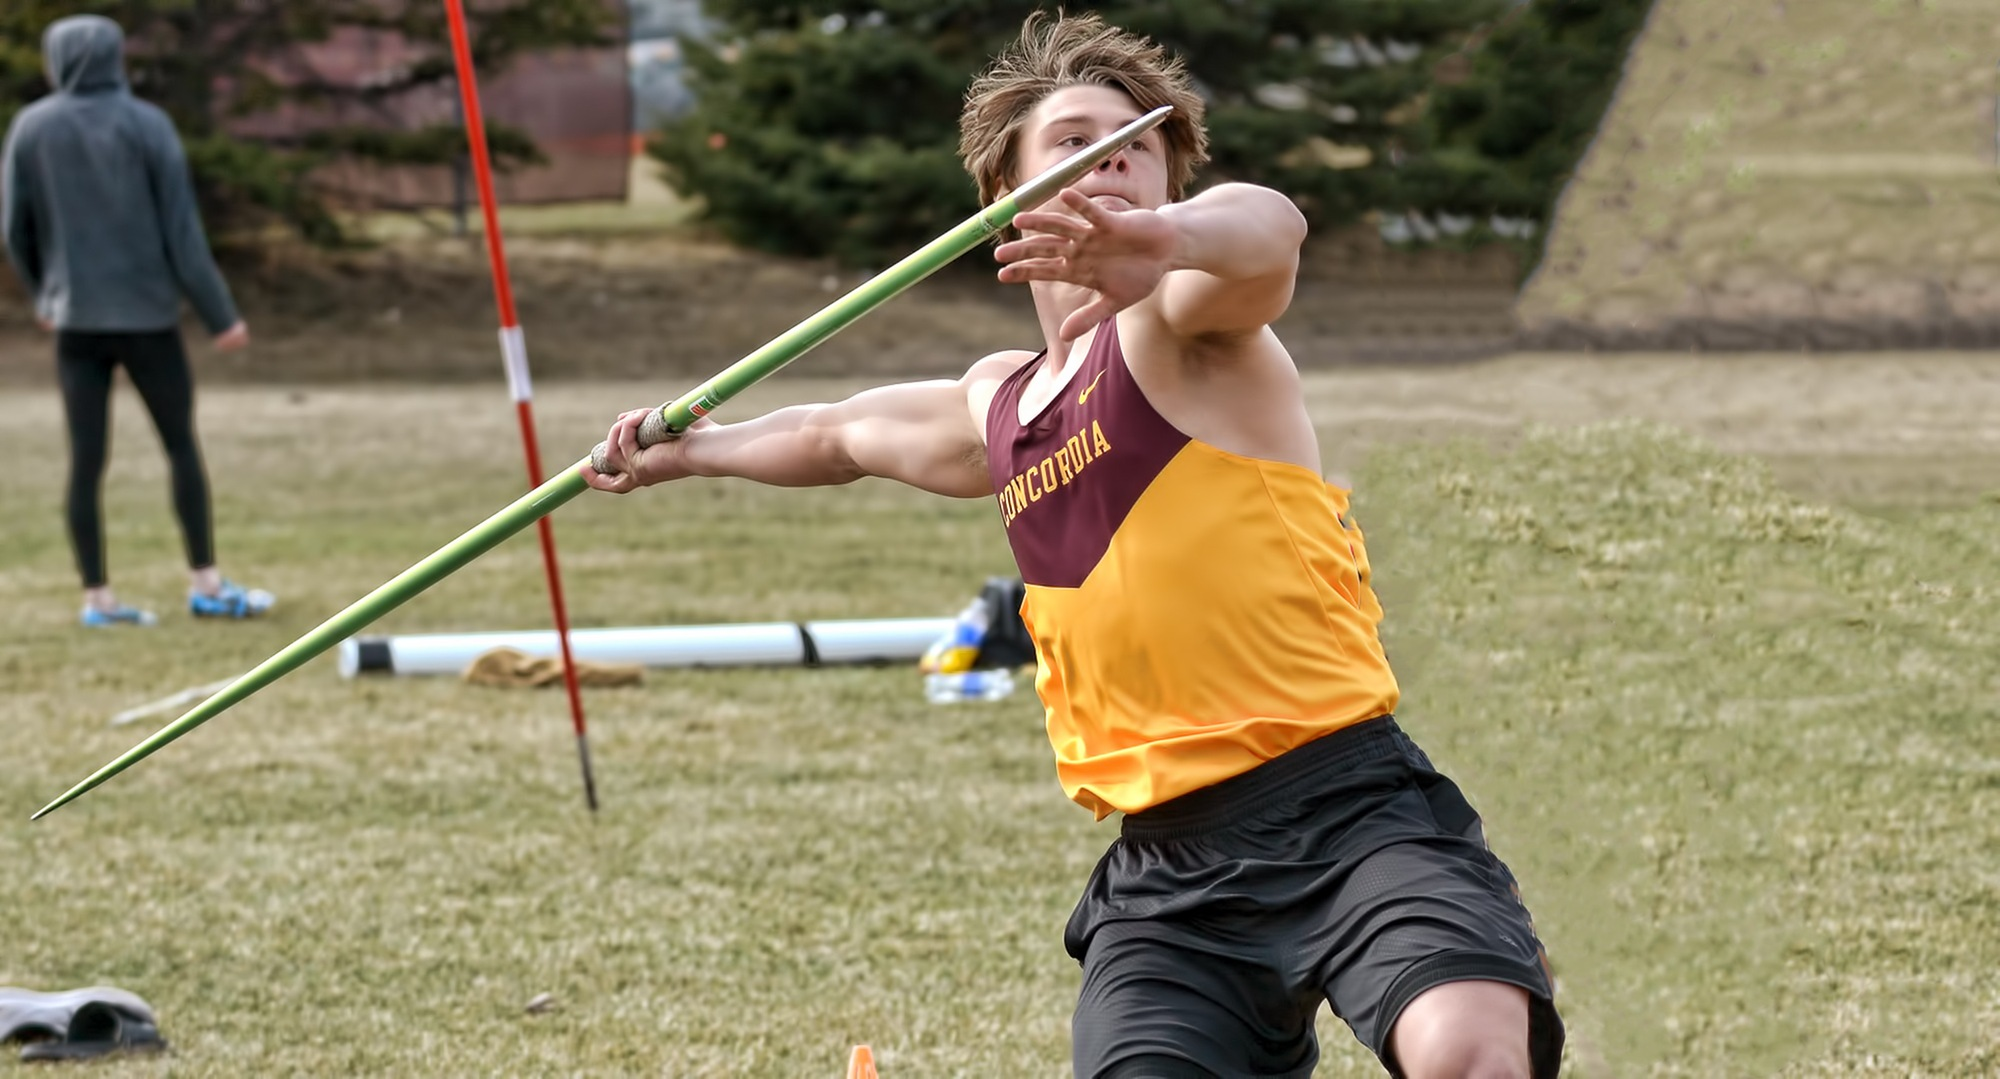 Junior Will Berning won the javelin at the St. Thomas Tomcat Open.